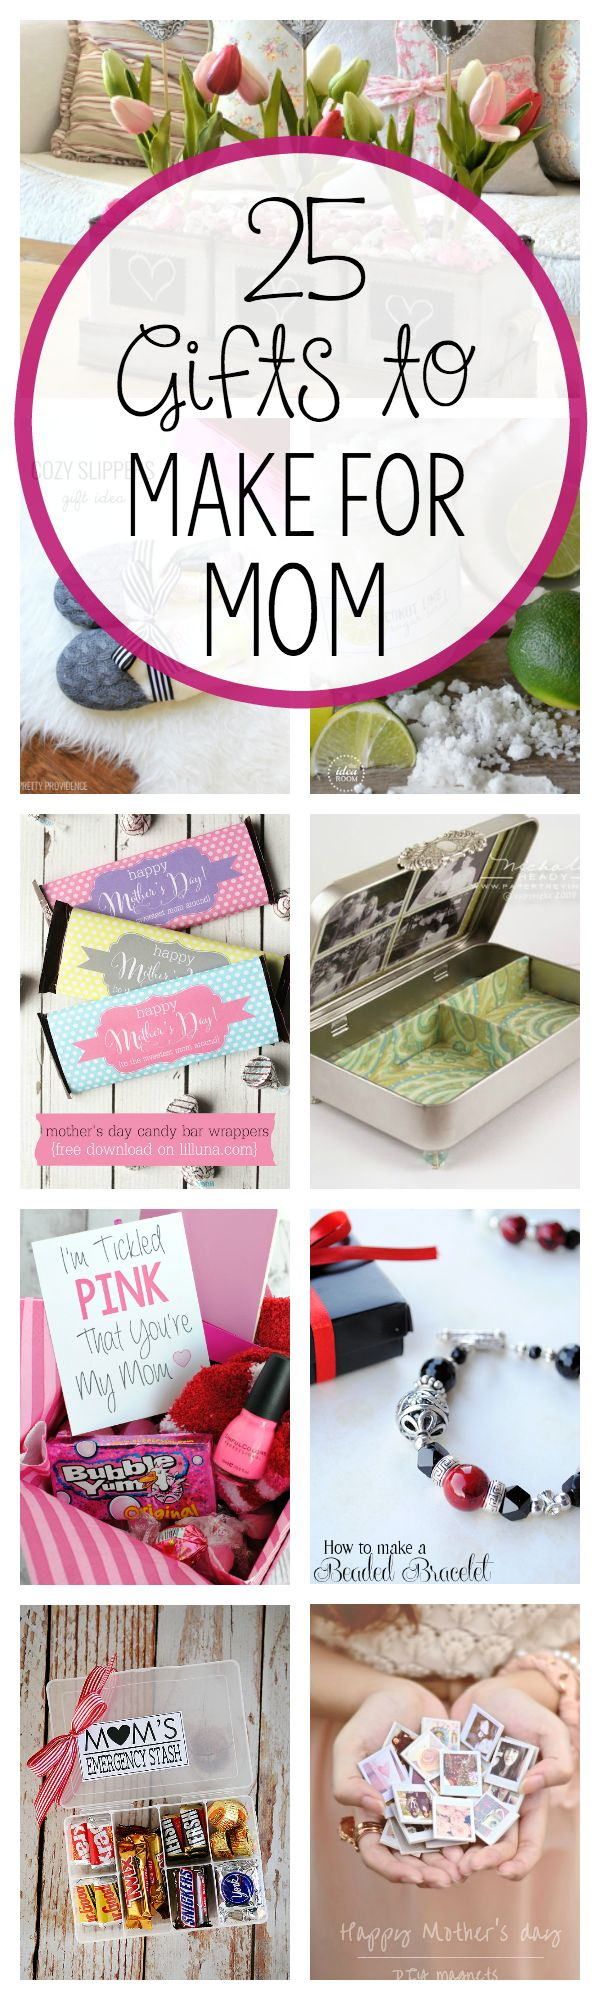 Gifts You Can Make for Mom